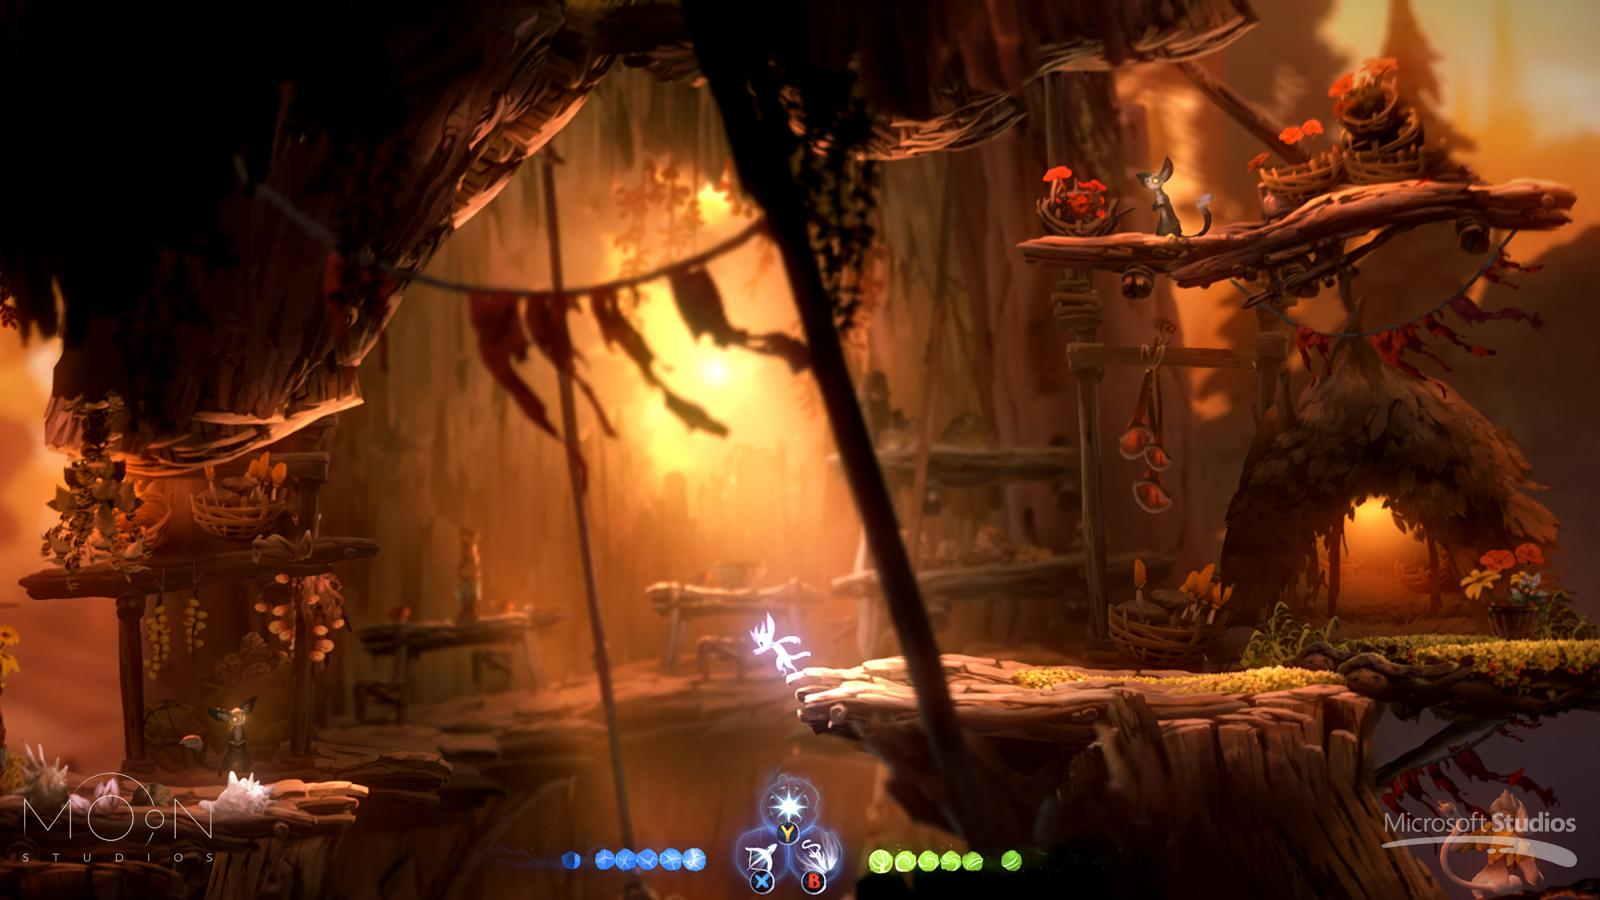 Incredible Game Level Design for Ori and the Will of the Wisps